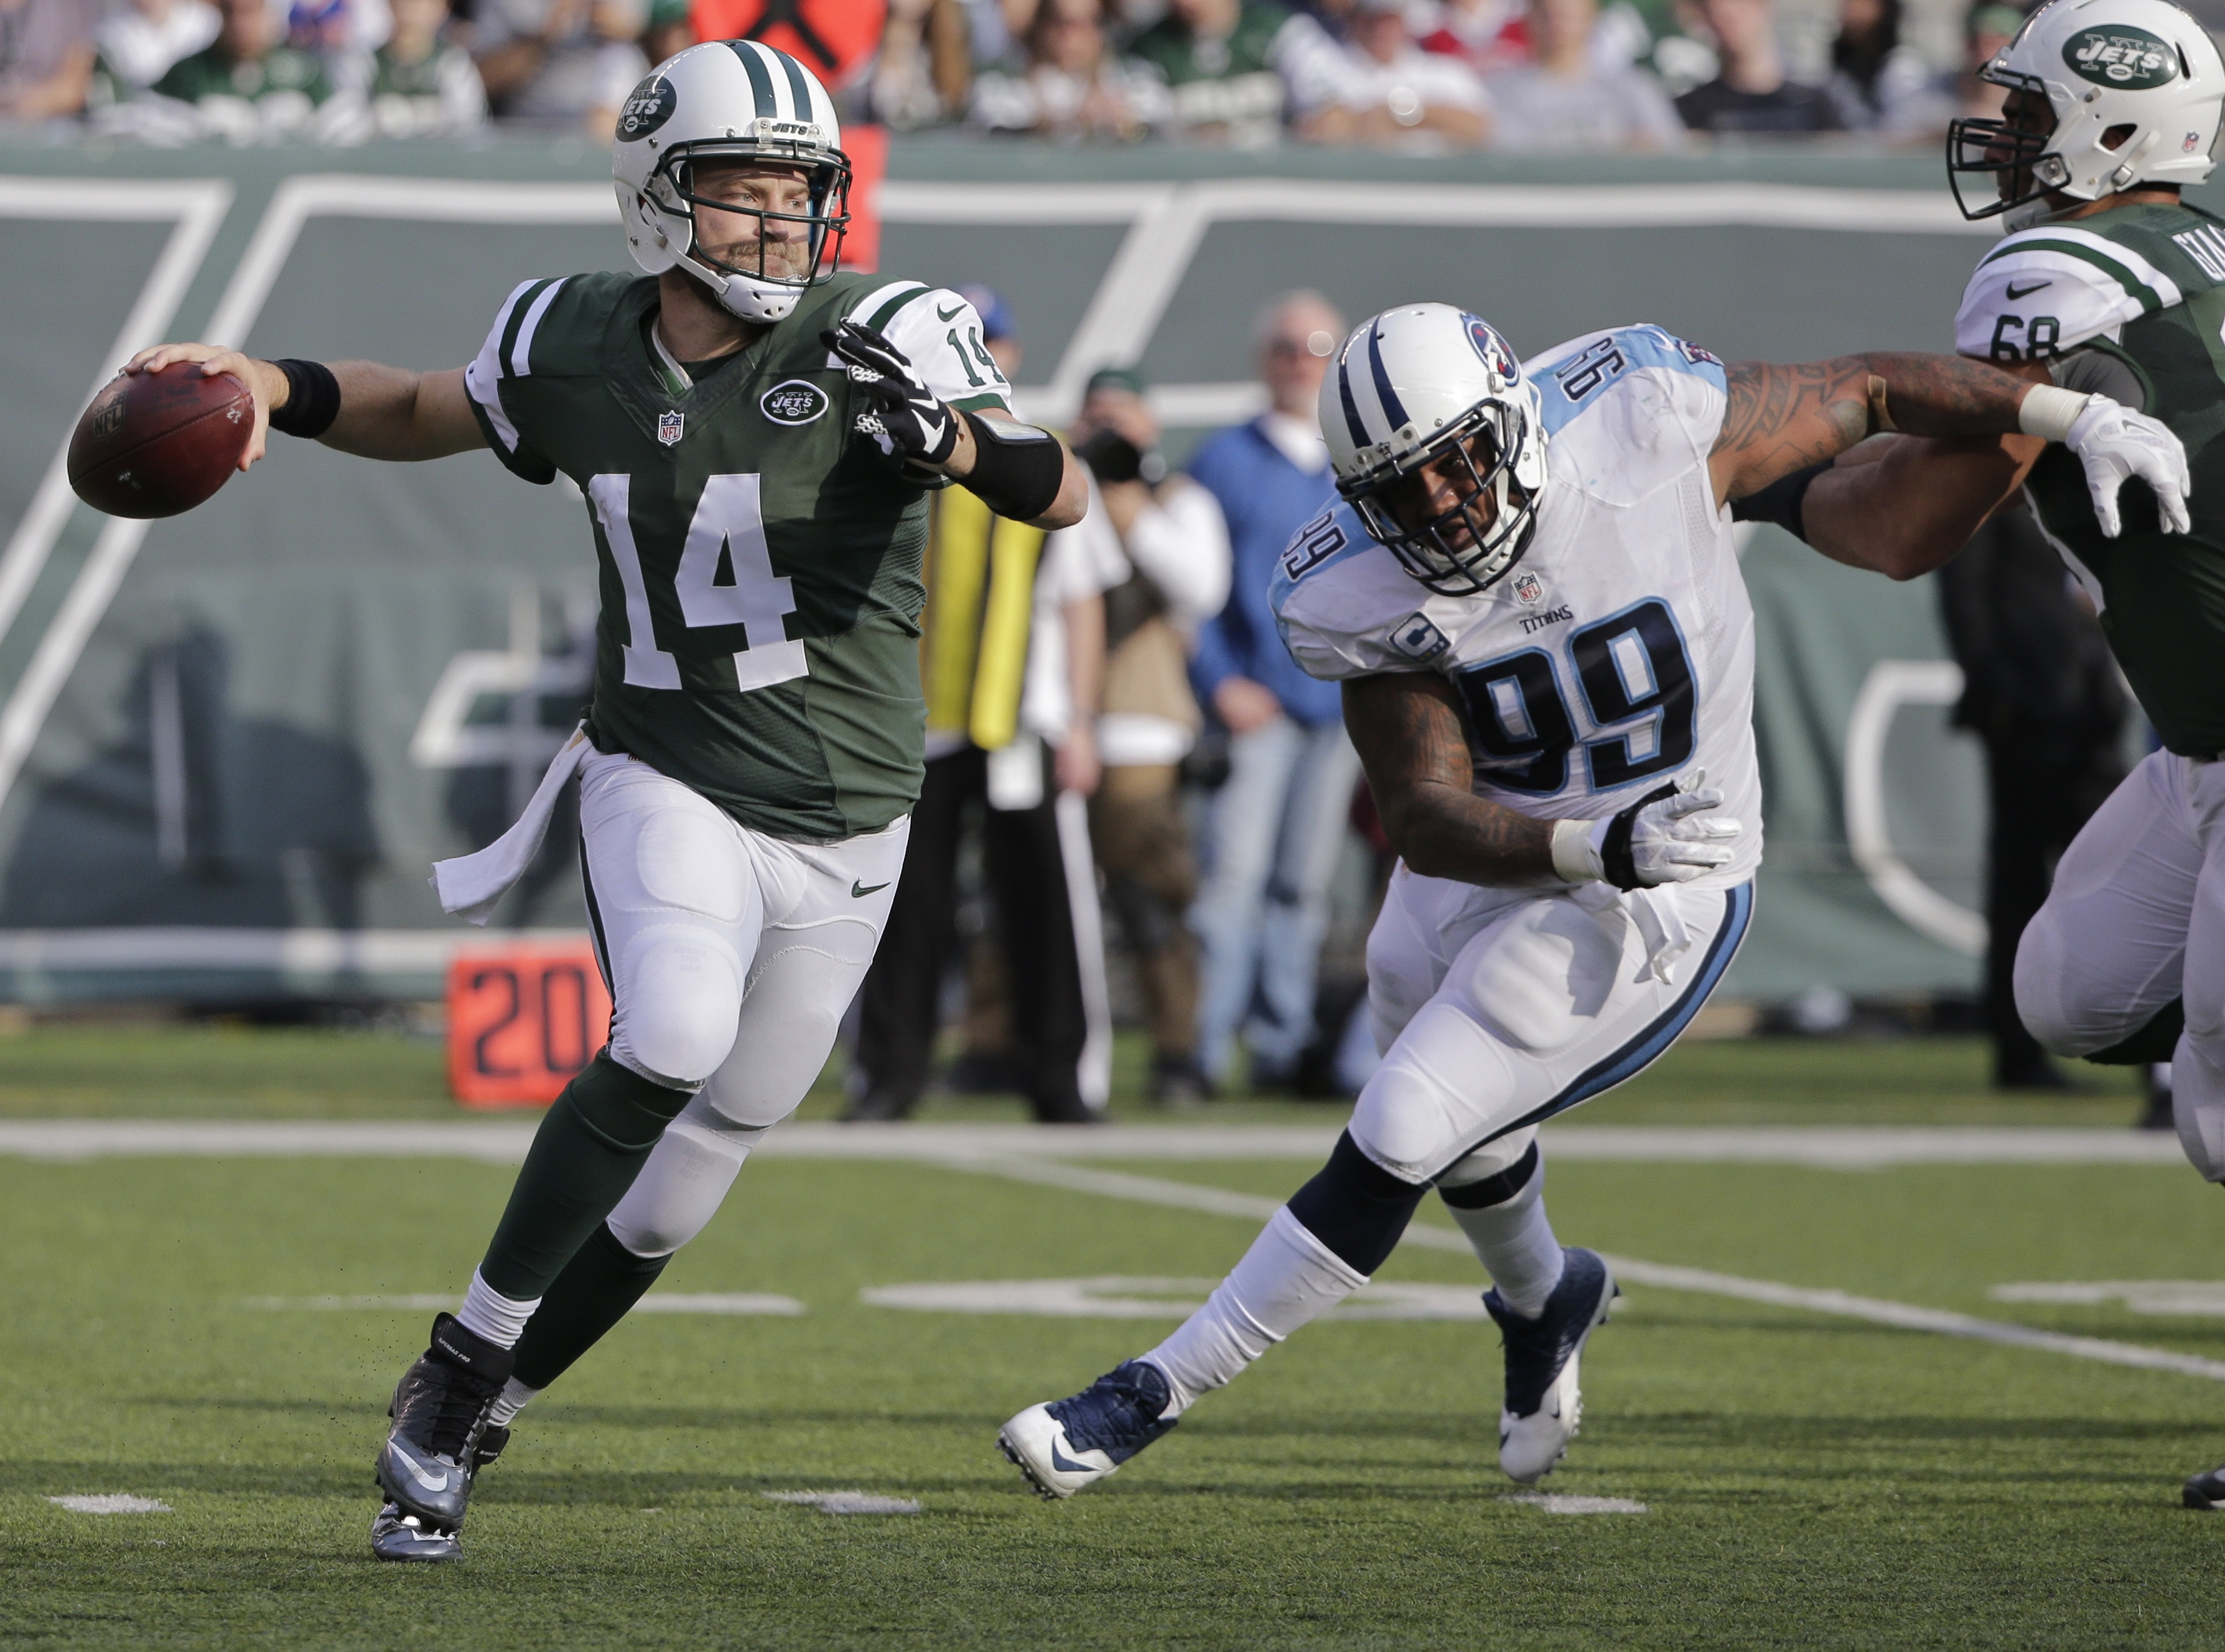 New York Jets quarterback Ryan Fitzpatrick (14) throws a pass away from Tennessee Titans' Jurrell Casey (99) during the first half of an NFL football game Sunday, Dec. 13, 2015, in East Rutherford, N.J.  (AP Photo/Julie Jacobson)